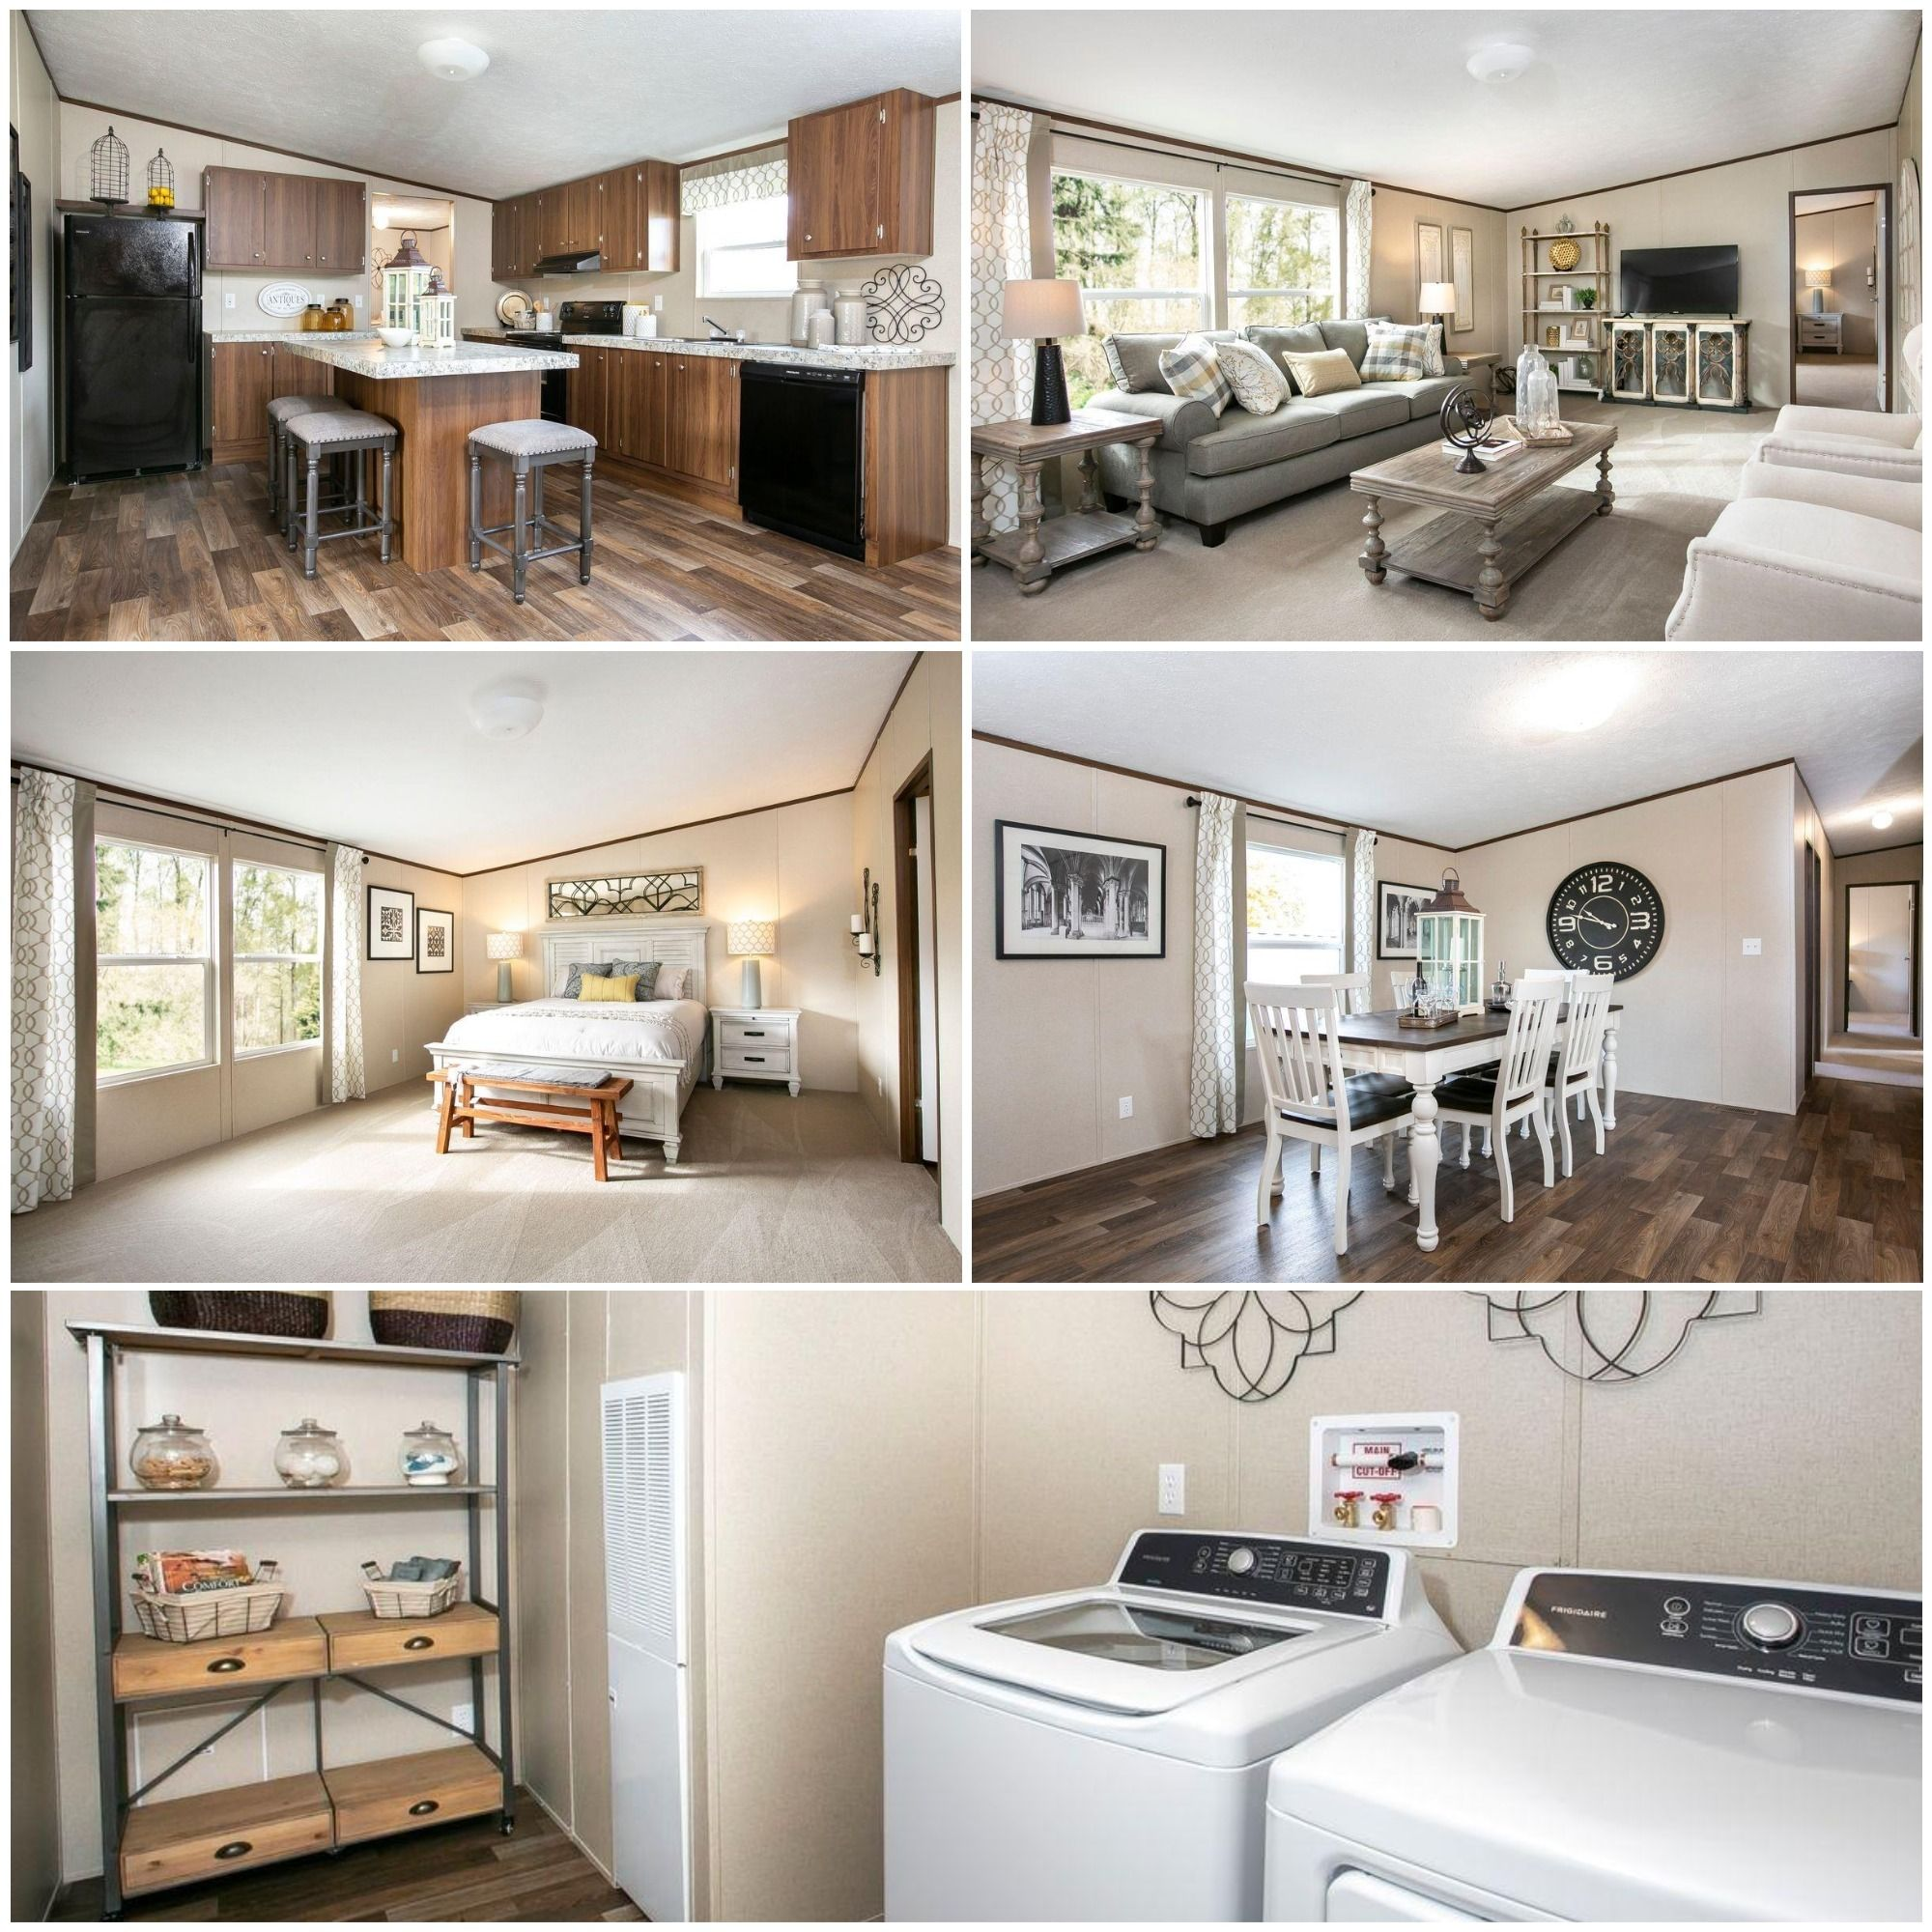 5 Bed 3 Bath Mobile Home For